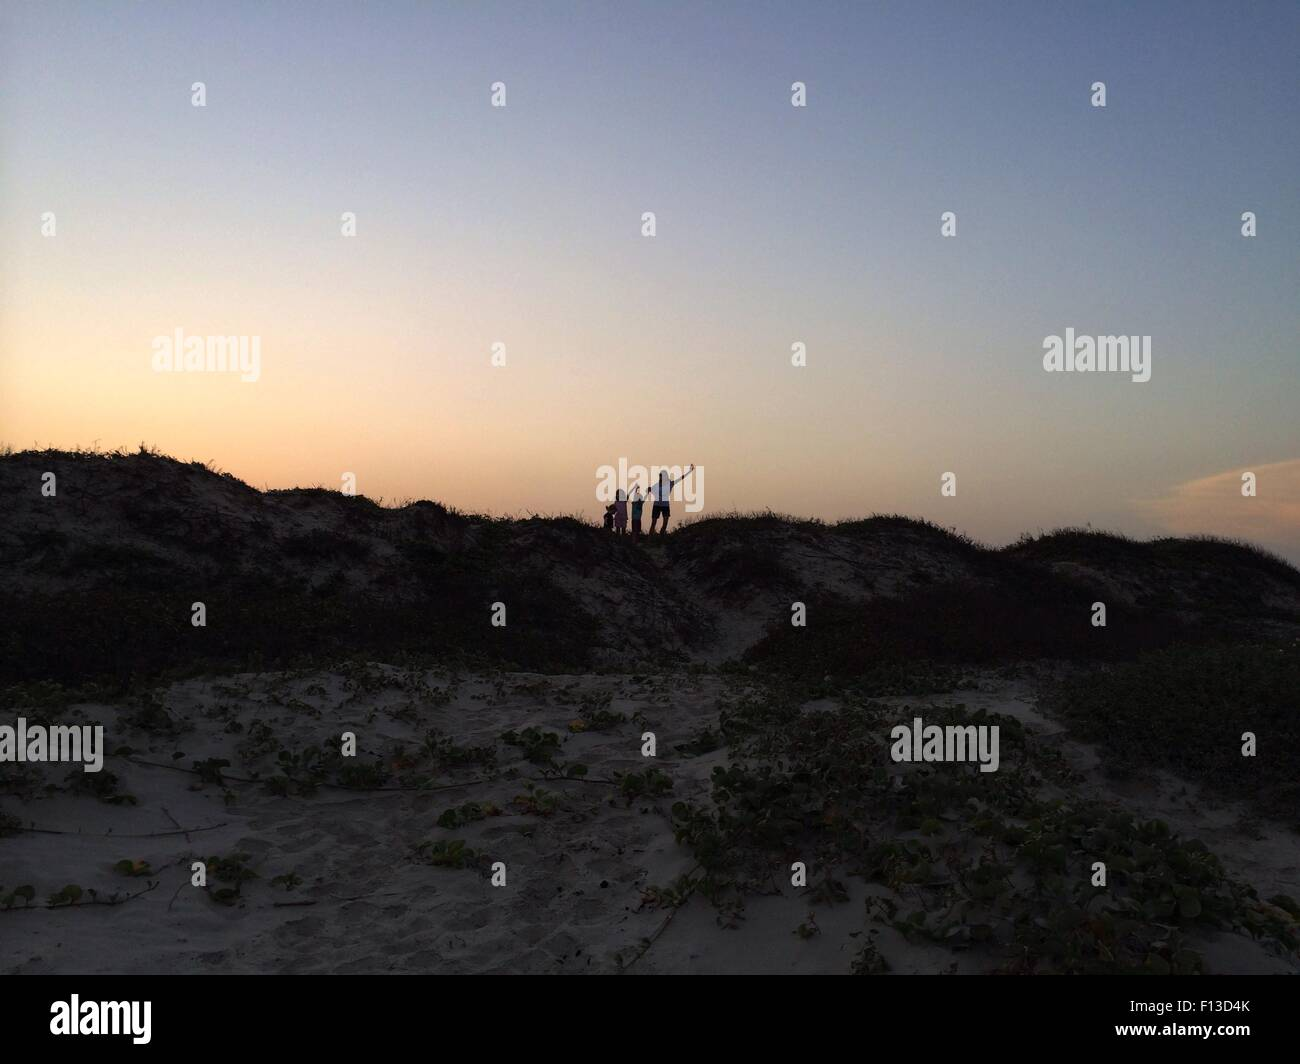 Silhouette of four people standing on a sand dune - Stock Image